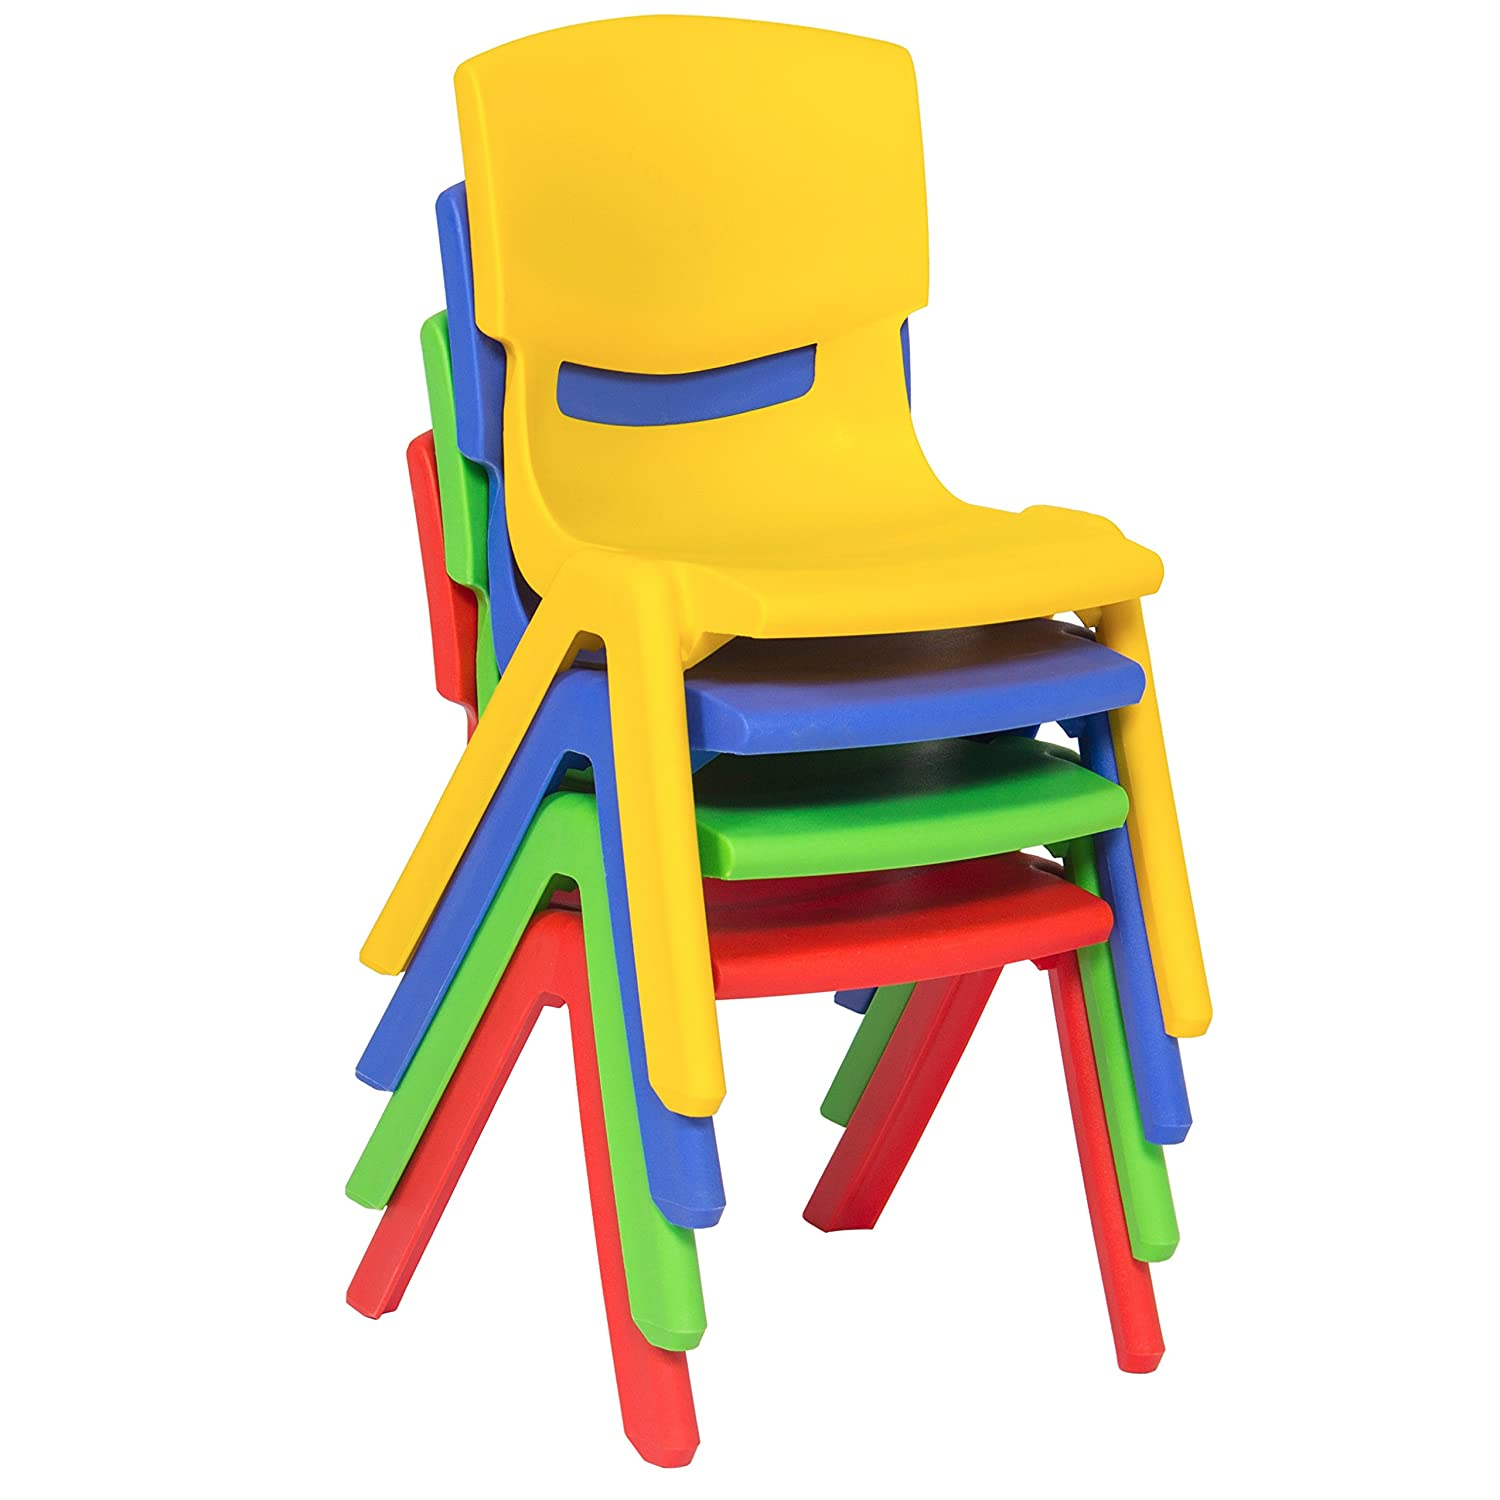 Amazon.com: Best Choice Products Multicolored Kids Plastic Table And 4  Chairs Set Colorful Furniture Play Fun School Home: Home U0026 Kitchen